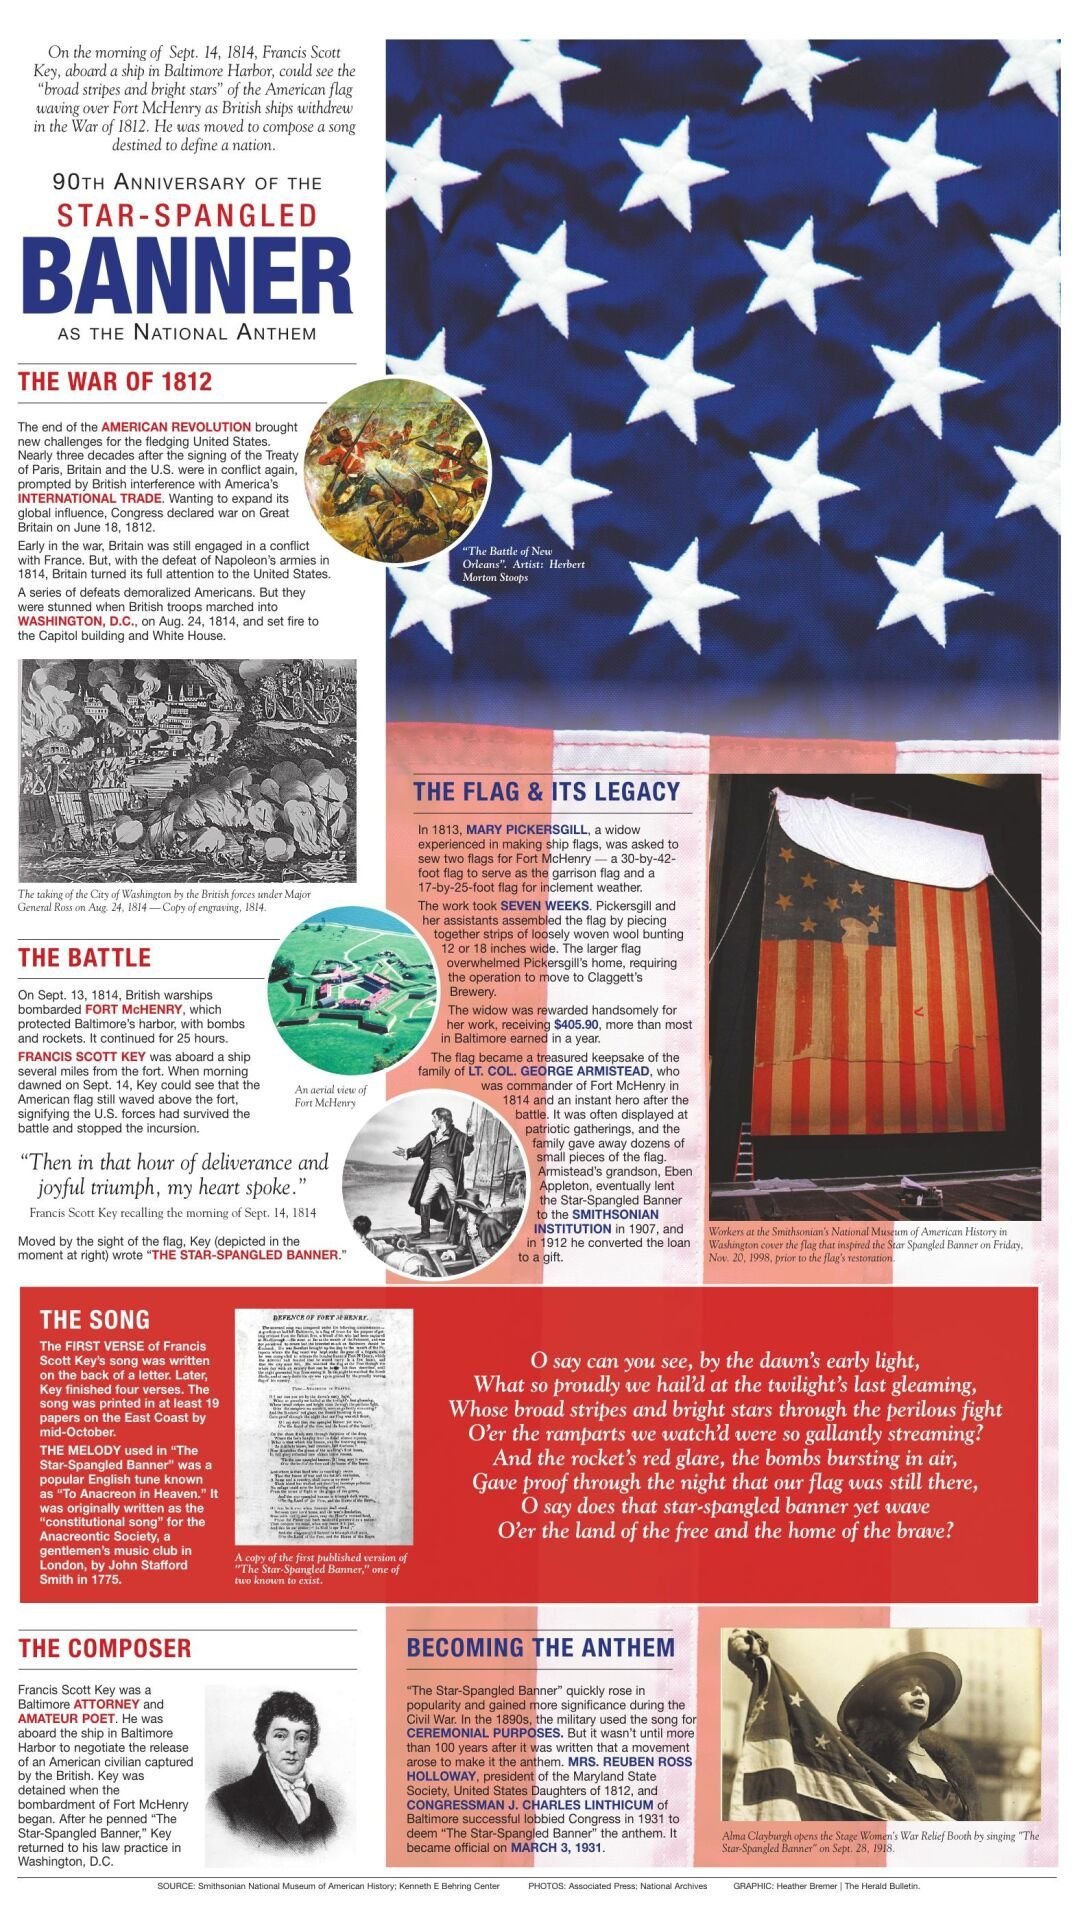 GRAPHIC: 90th anniversary of 'The Star-Spangled Banner' becoming the national anthem